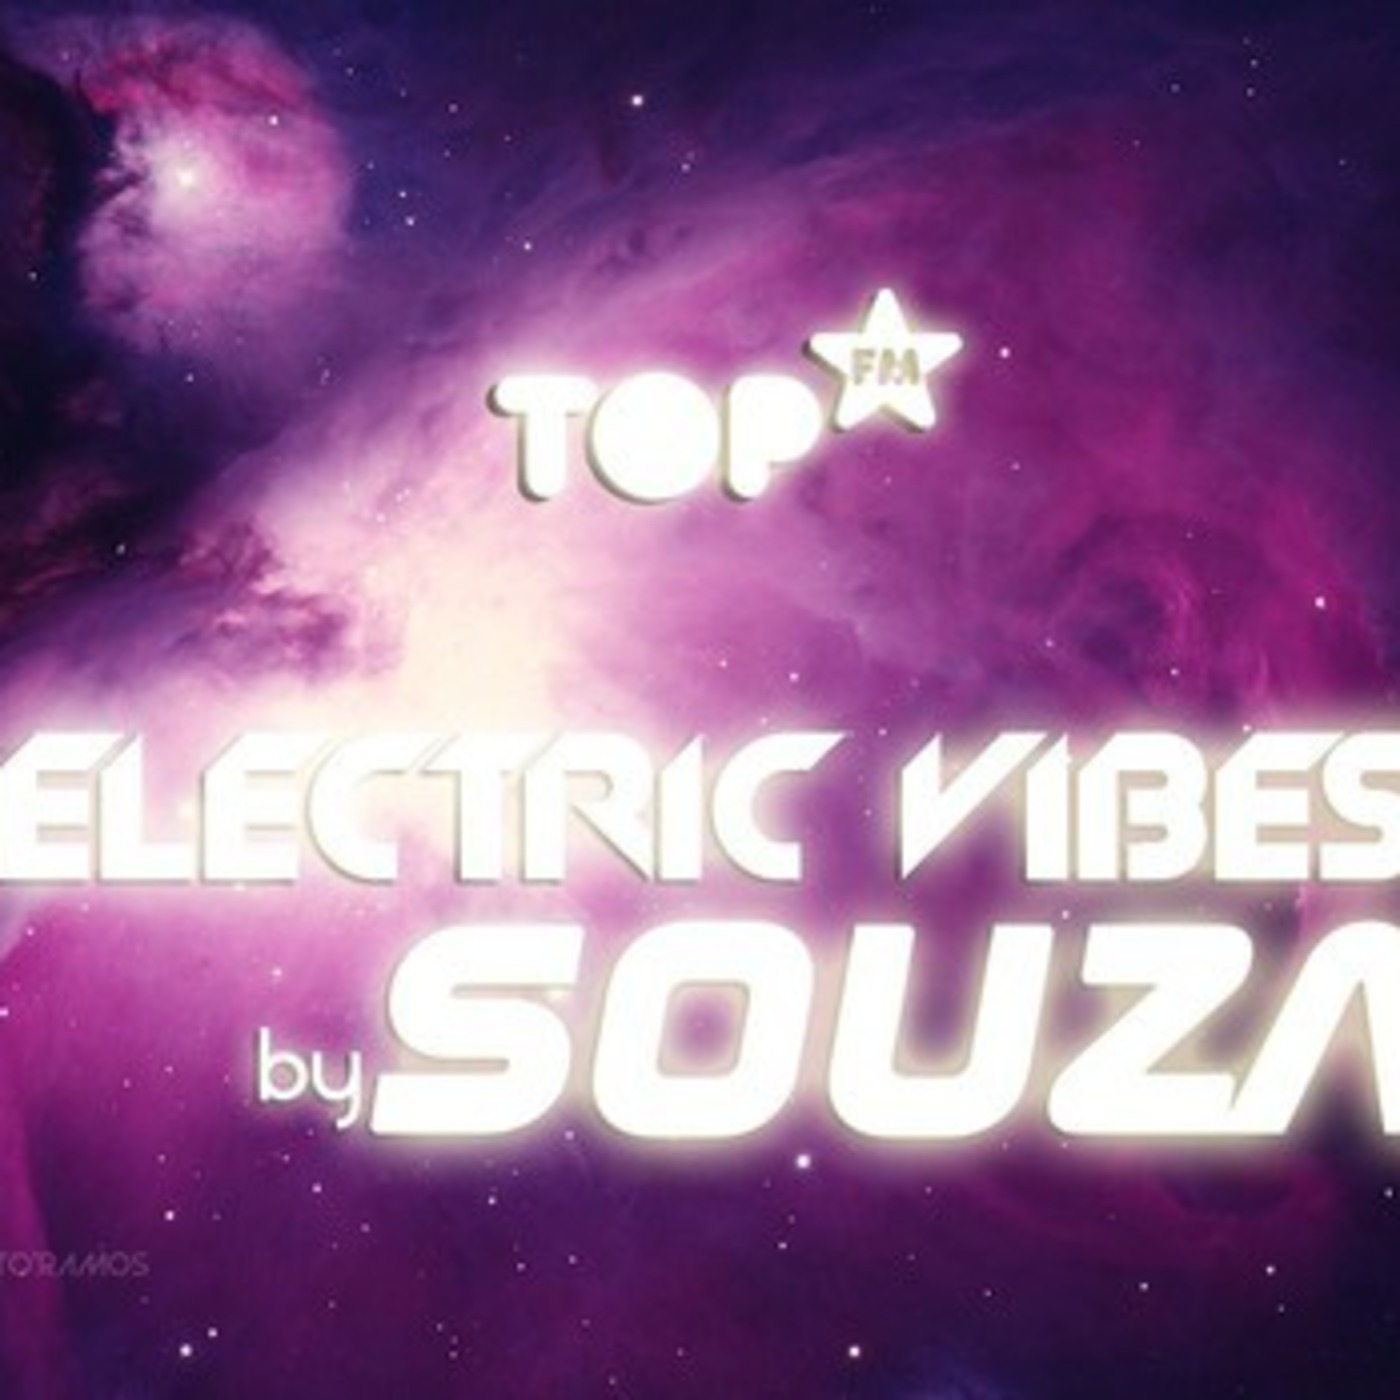 SOUZA - Electric Vibes